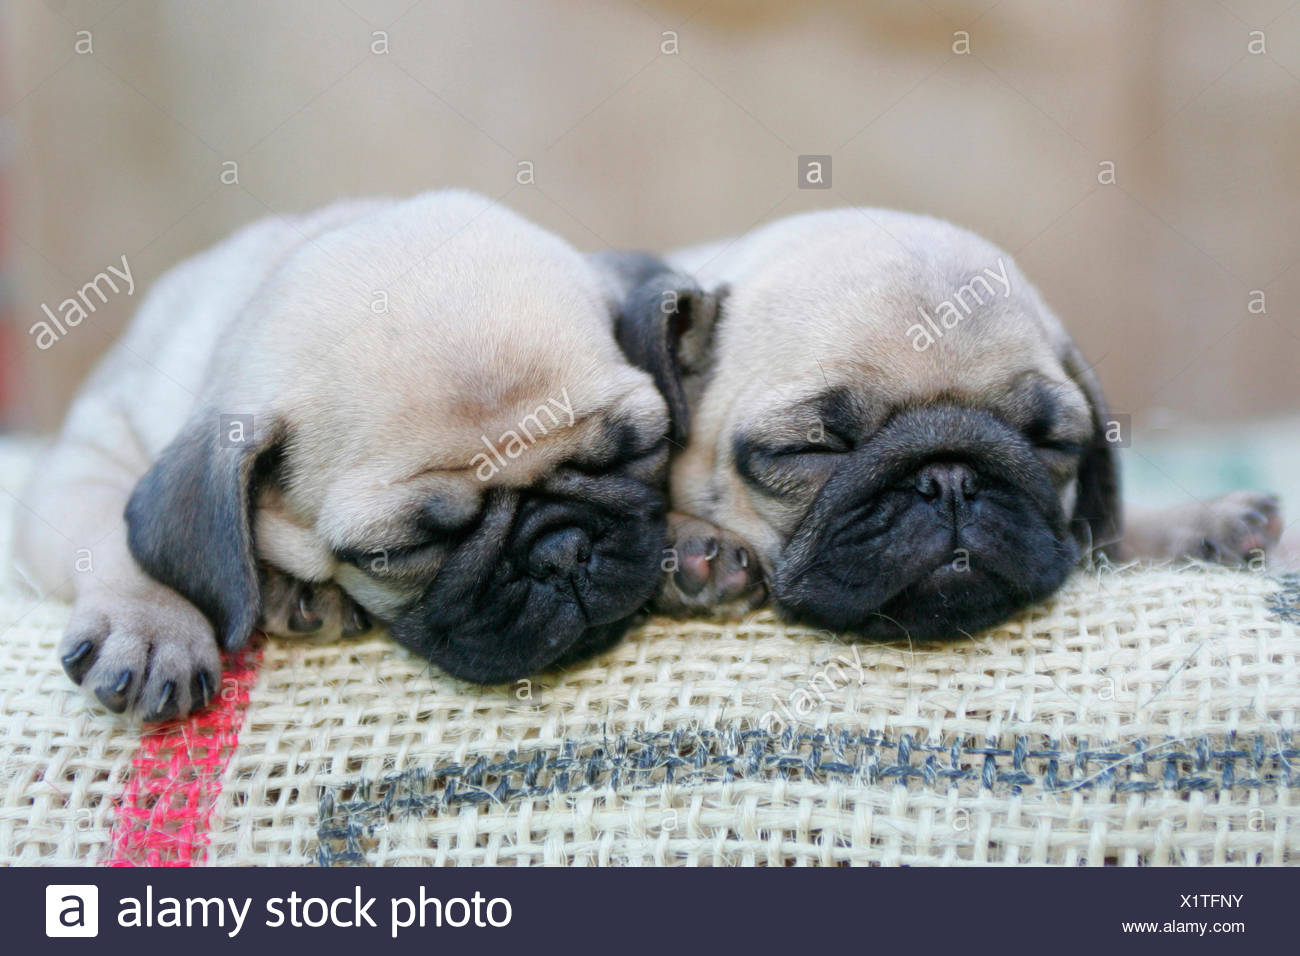 Pug Two Puppies Sleeping On A Sackcloth Germany Stock Photo